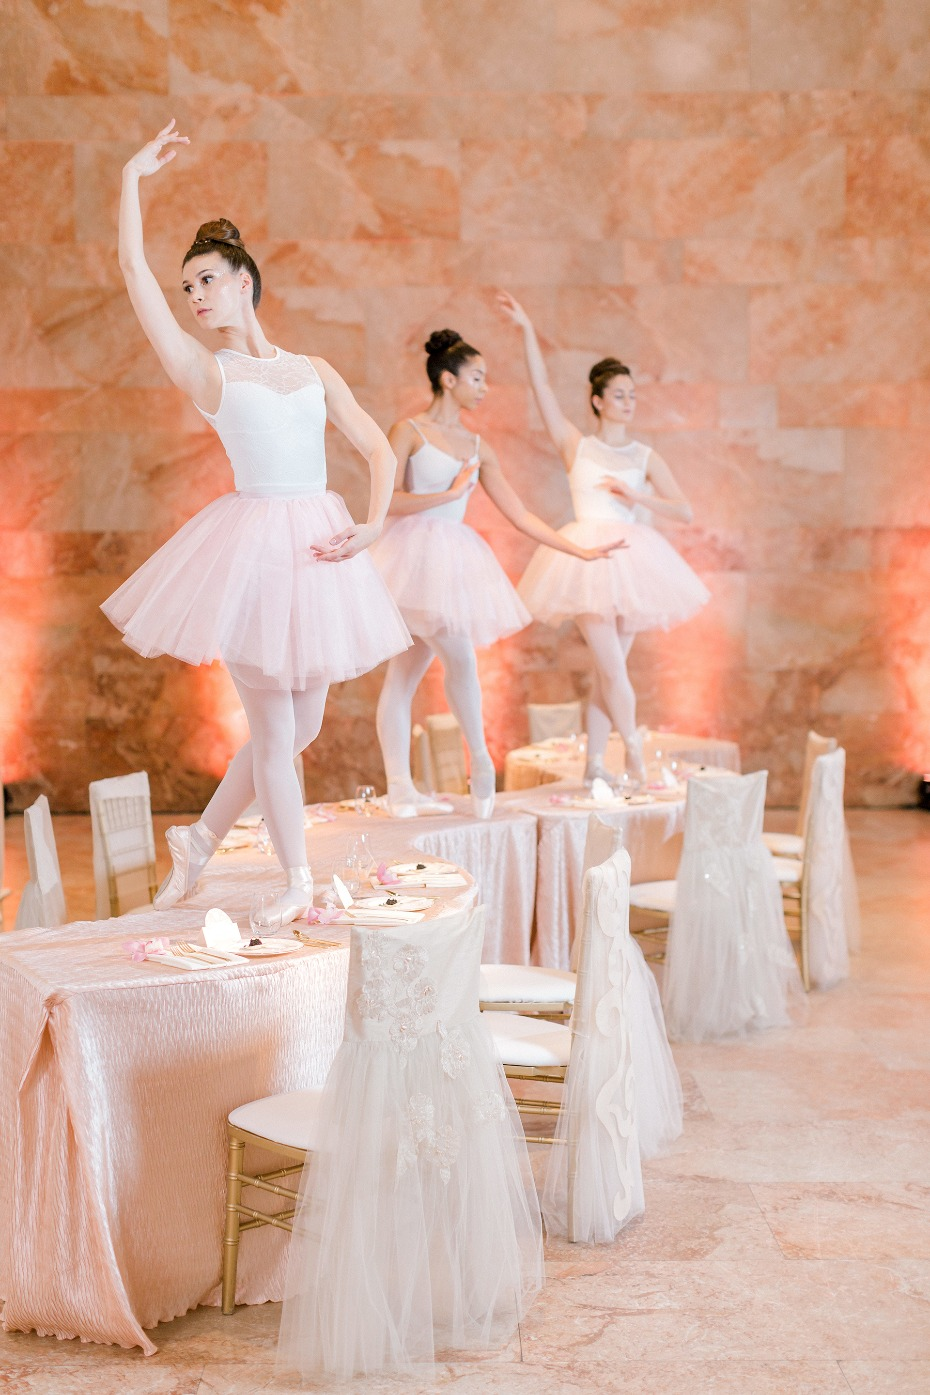 Regal wedding ideas with ballerinas